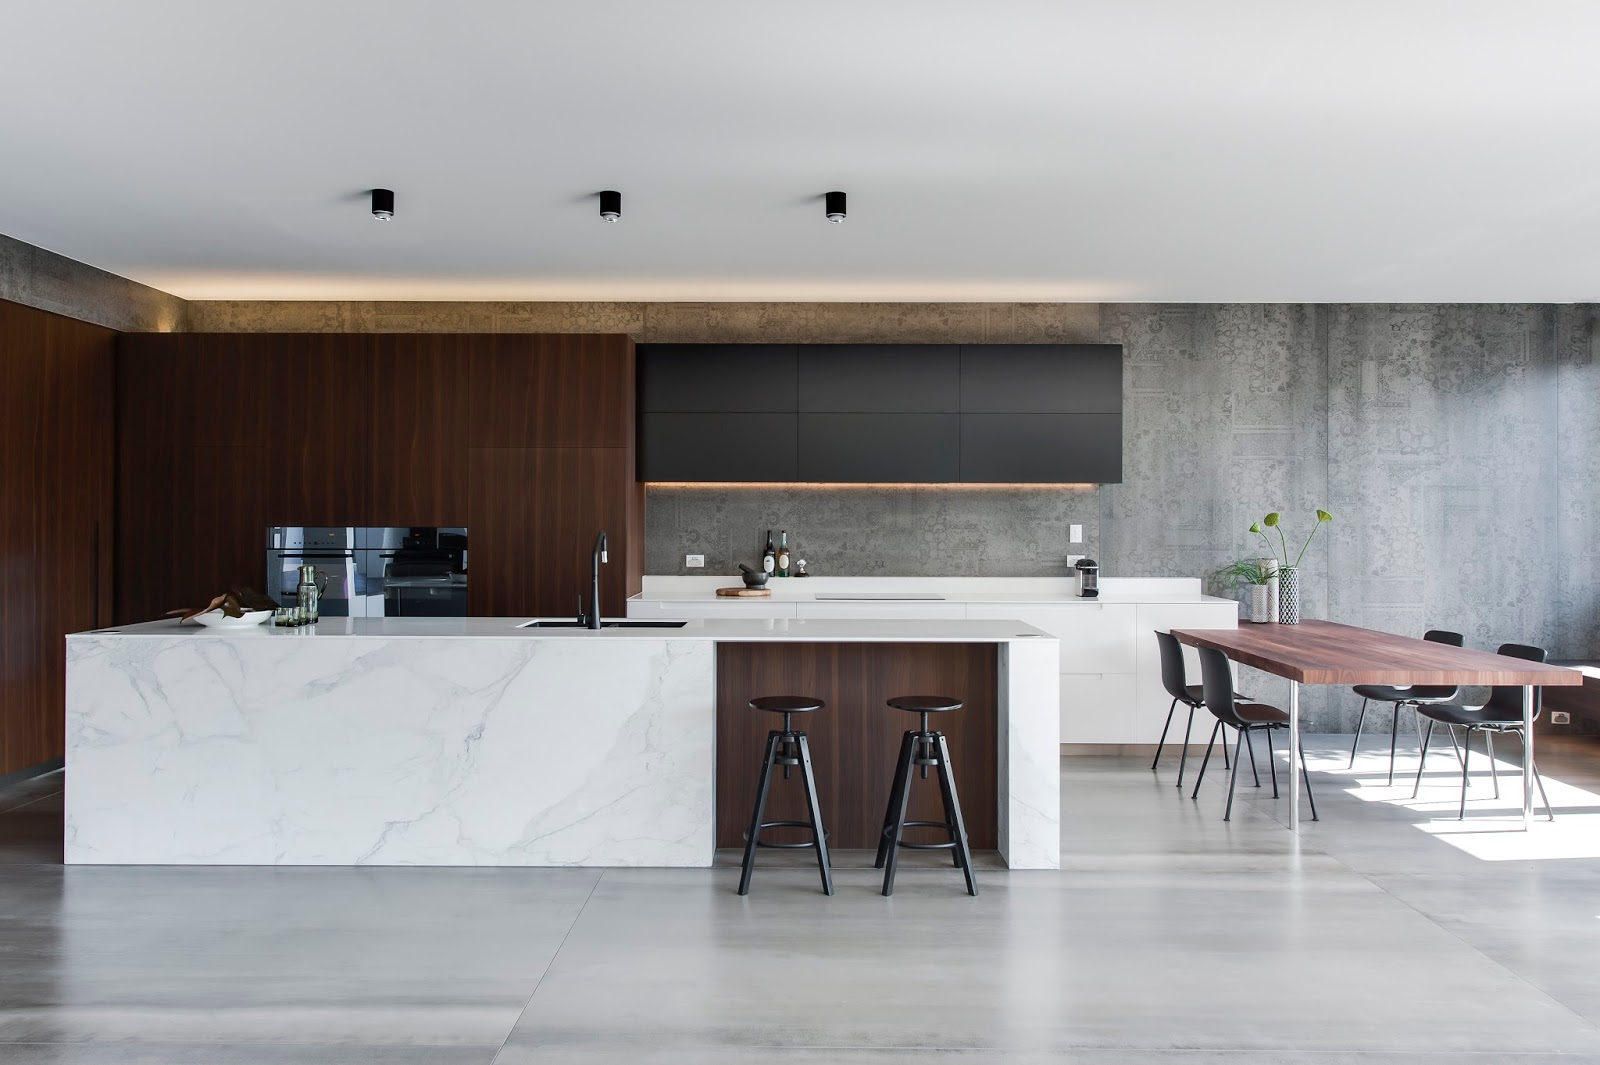 minosa amazing kitchen design leaves us with house envy On amazing kitchen designs